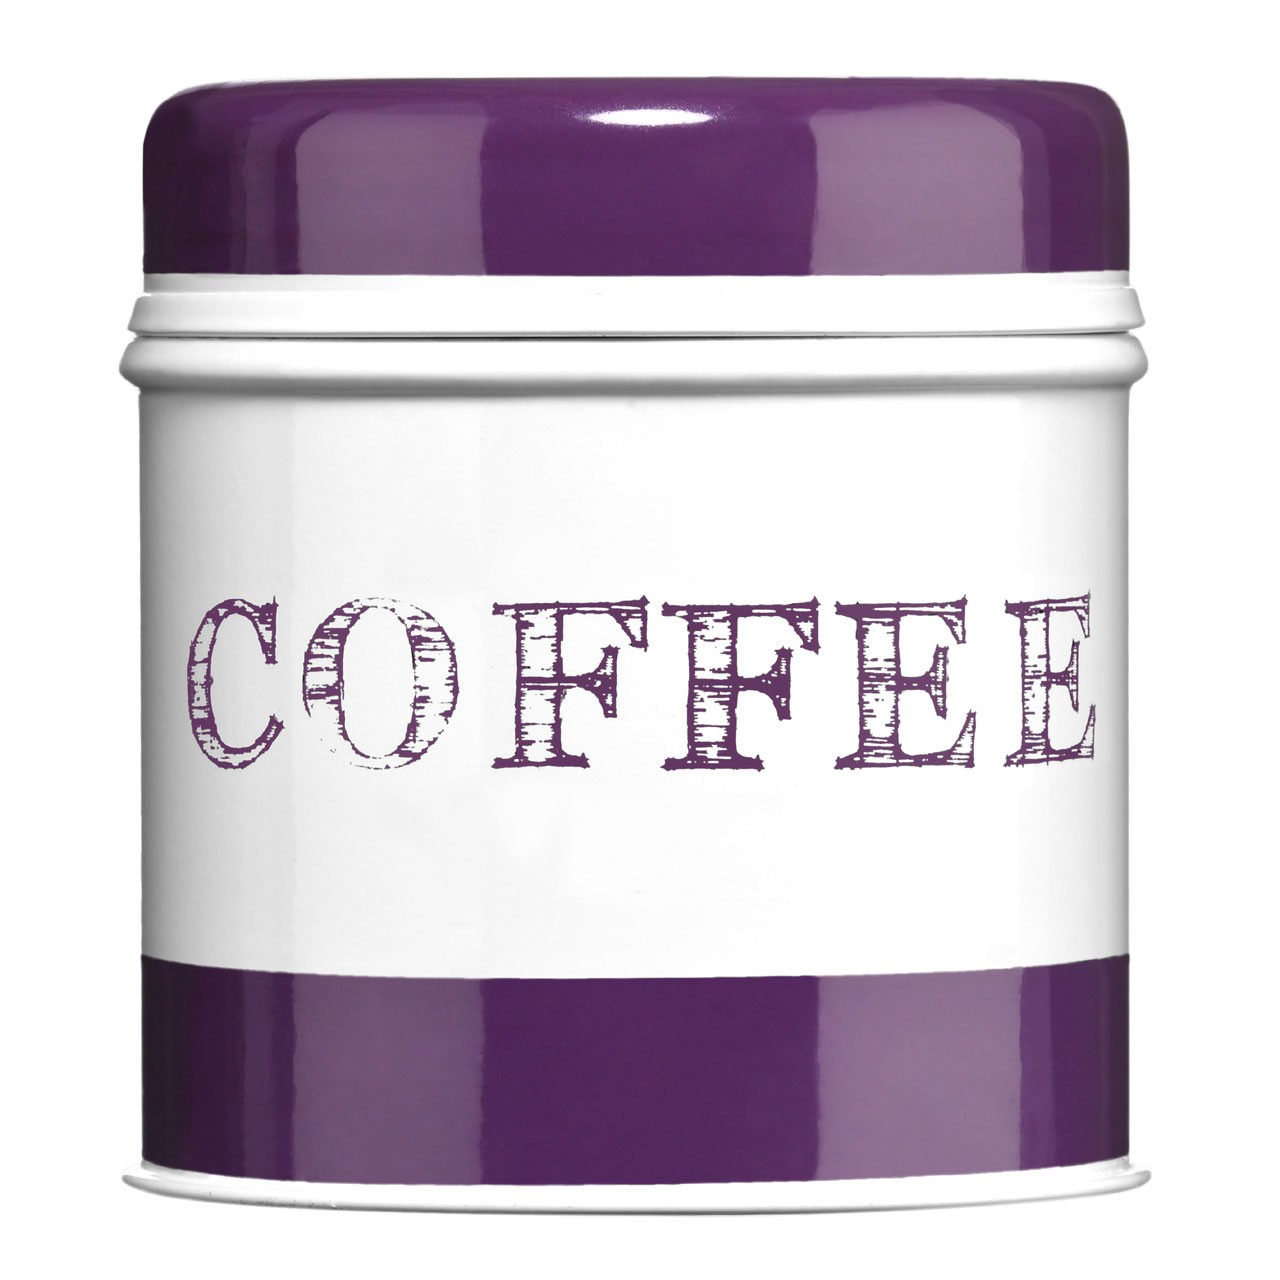 Band Coffee Canister - Purple